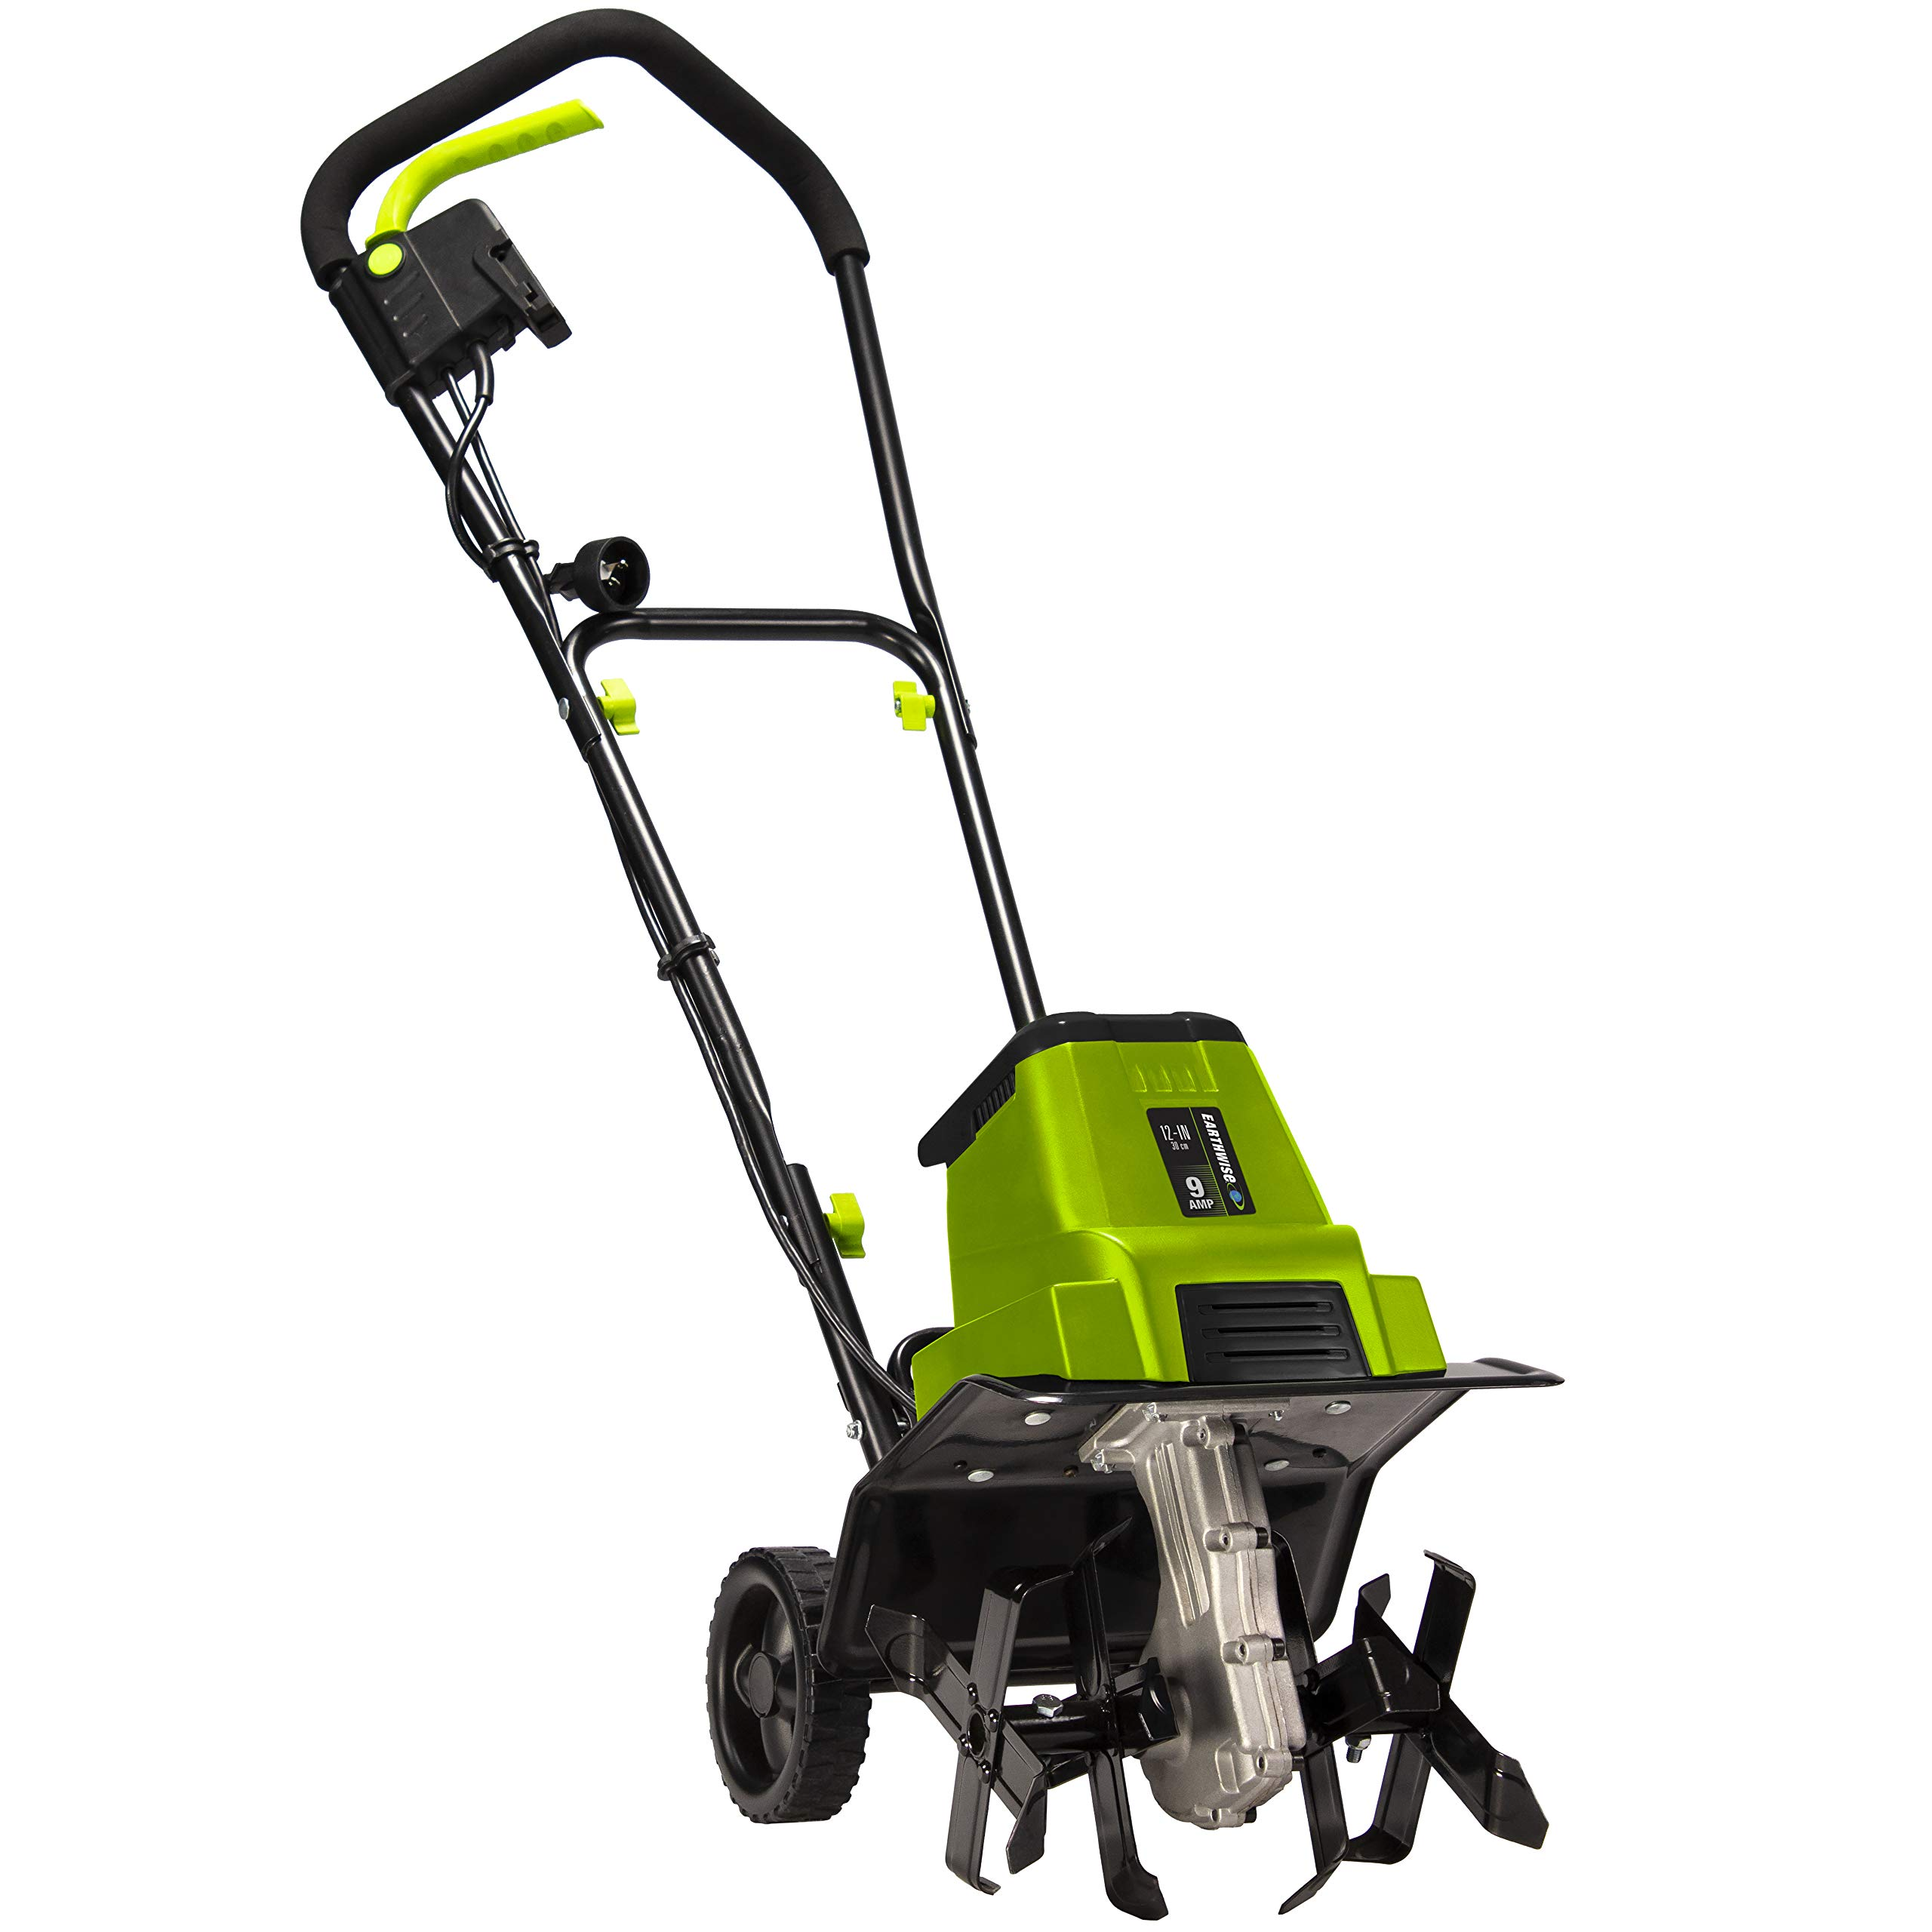 Earthwise TC70090 9-Amp 12-Inch Corded Tiller/Cultivator, Green by Earthwise